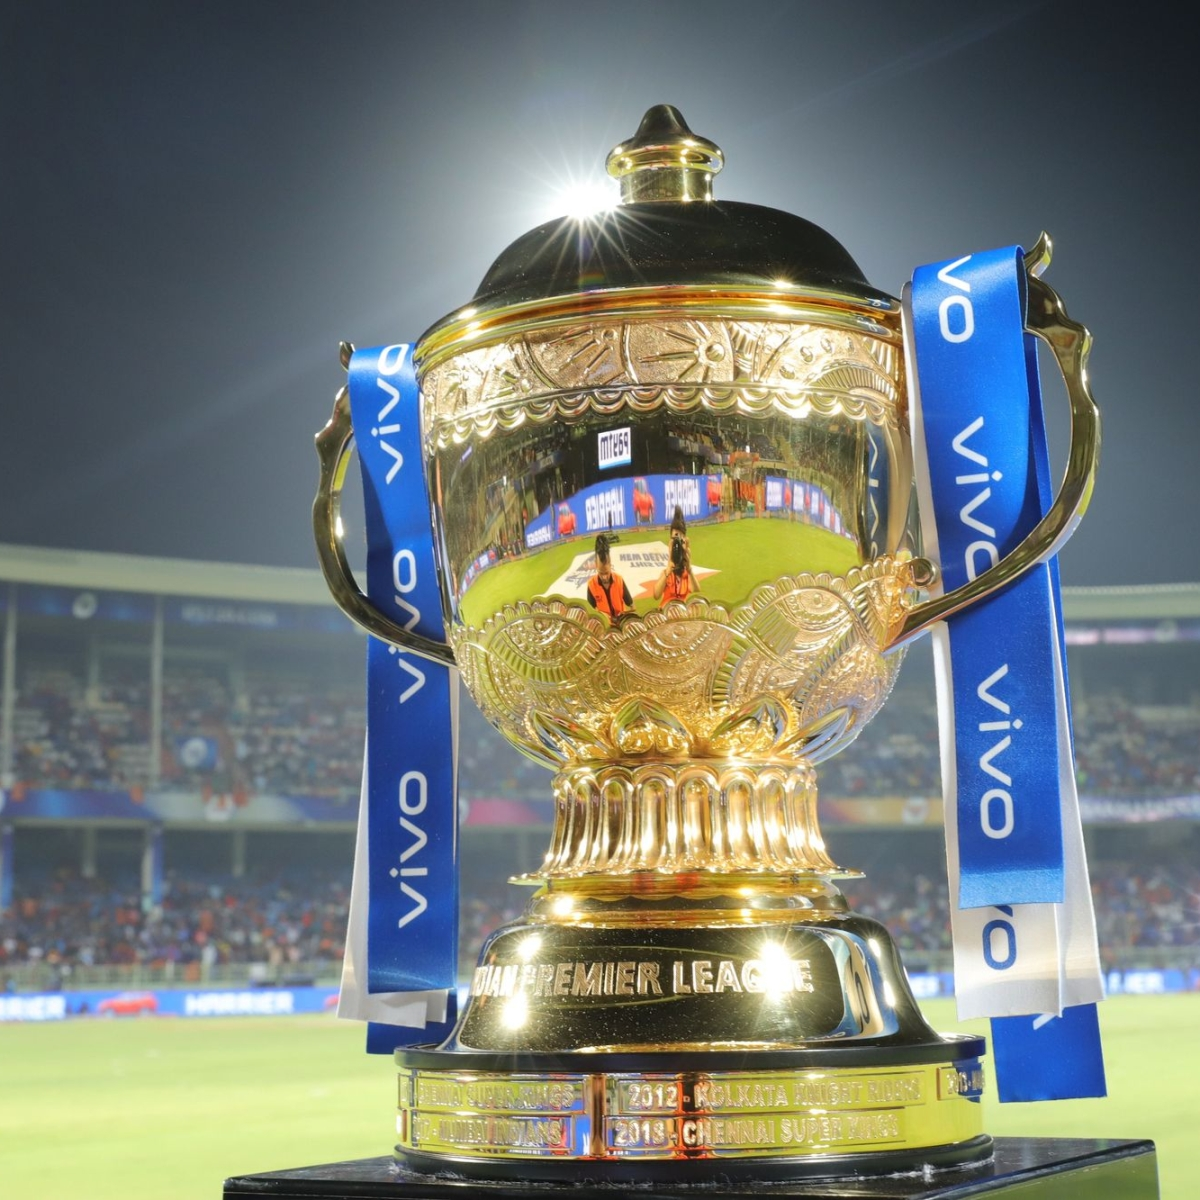 Franchises want IPL 2020 to be held in its complete form, says Kolkata Knight Riders CEO